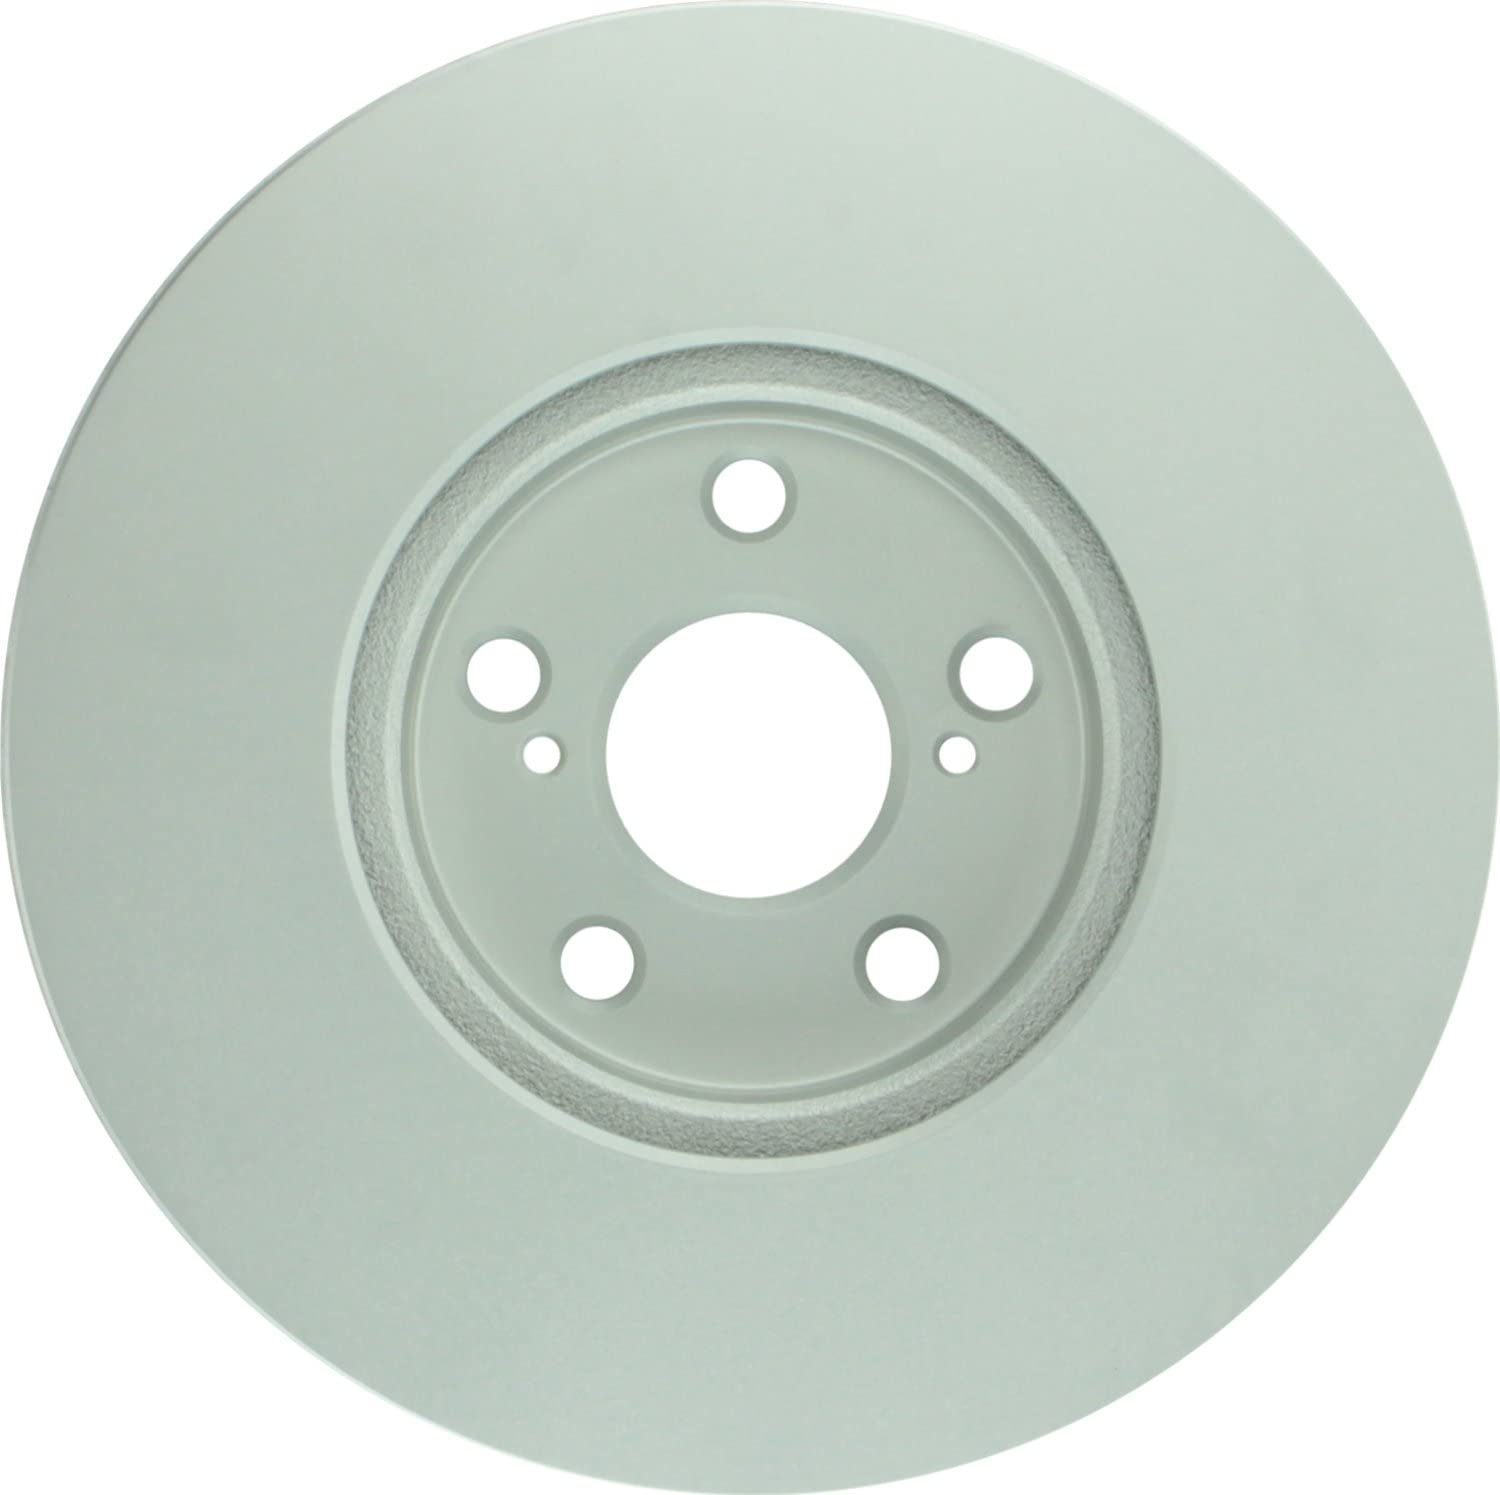 2009 For Toyota Corolla Anti Rust Coated Front Disc Brake Rotors